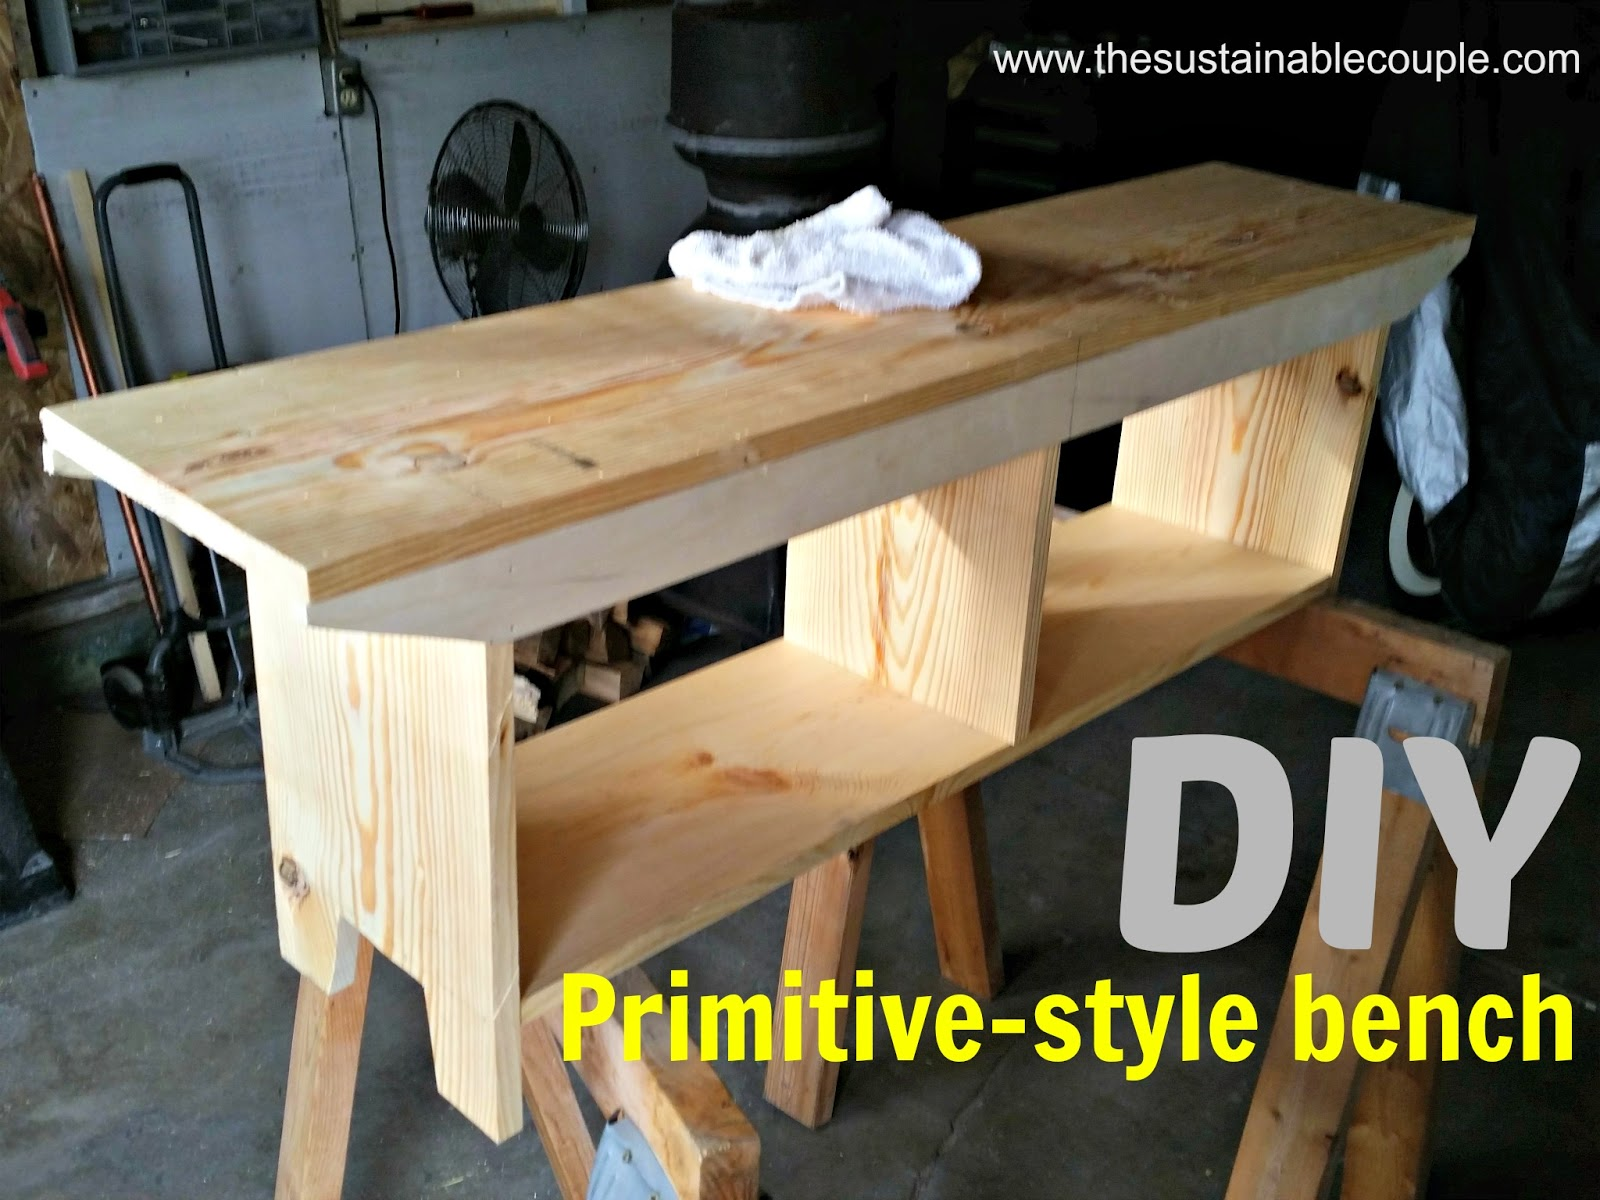 Diy primitive furniture - What Do You Know But Only A Few Hours Later My Homestud Had A Nice Bench Ready For Painting Let Me Tell You He Did A Great Job And It Was Sooooooo Easy